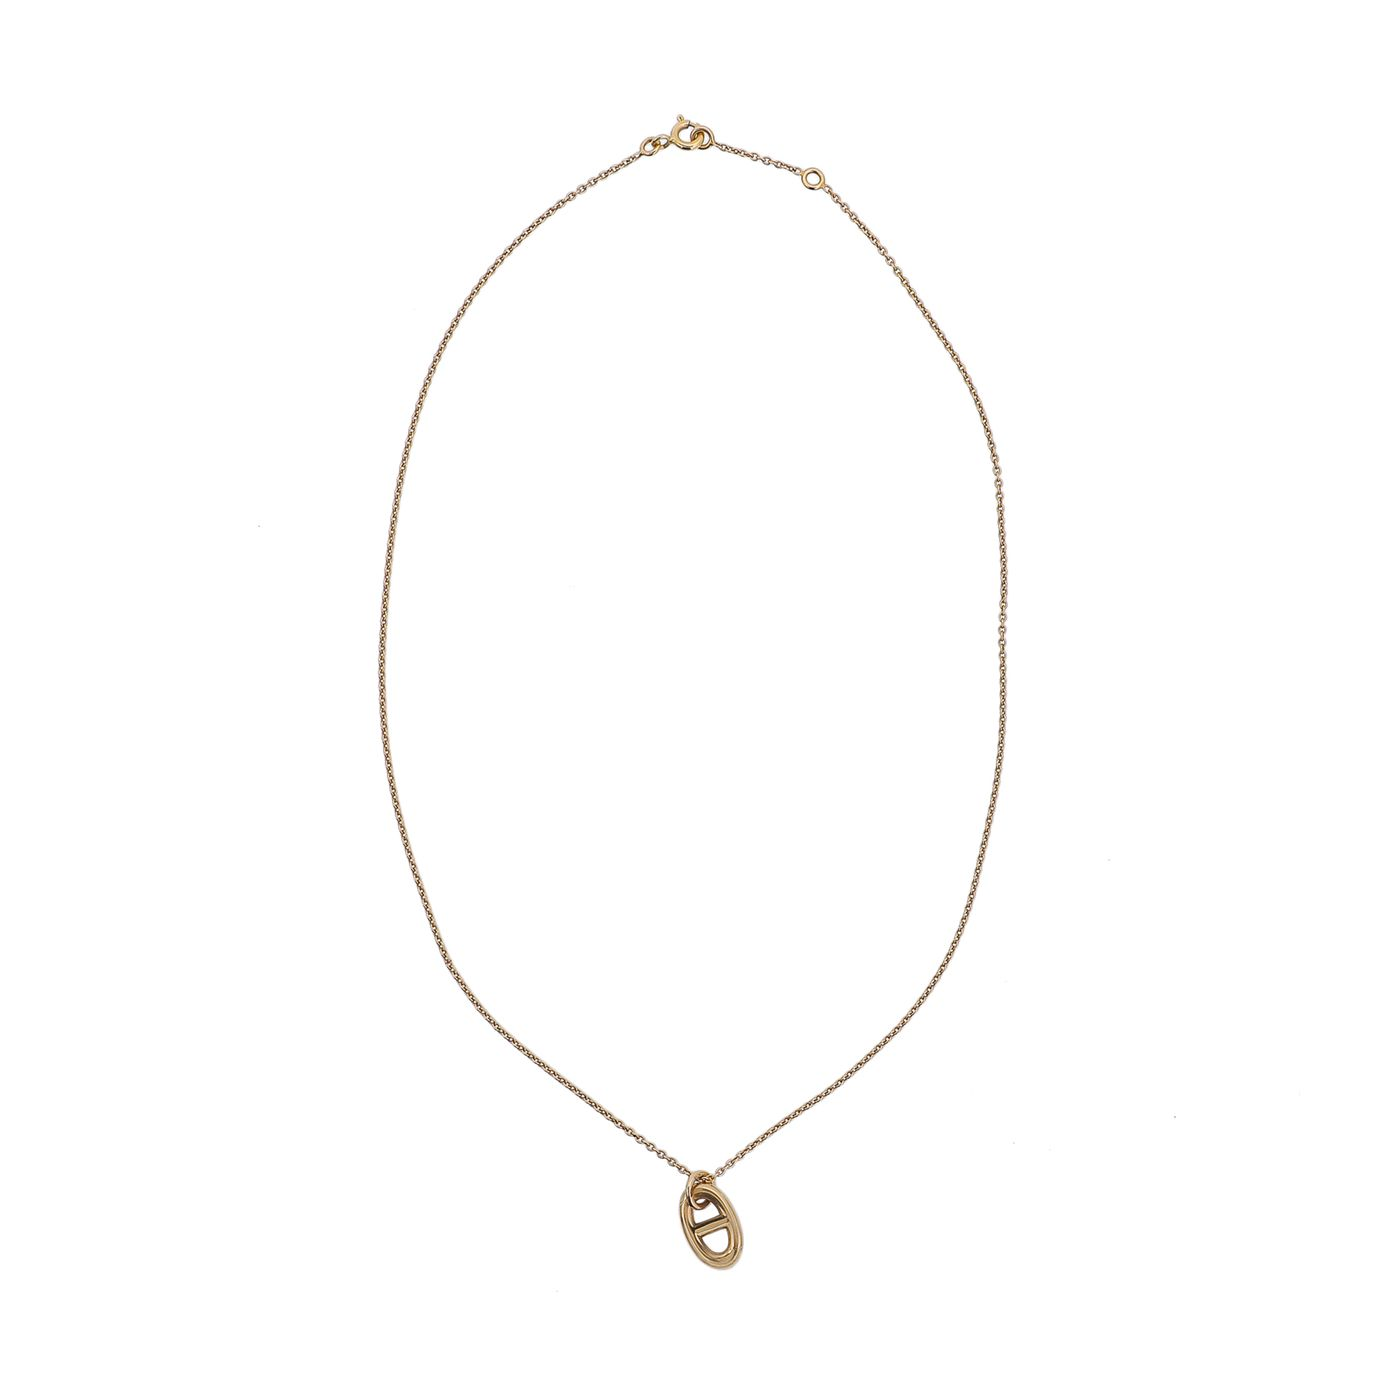 Hermes 18K Rose Gold Farandole Pendant Necklace